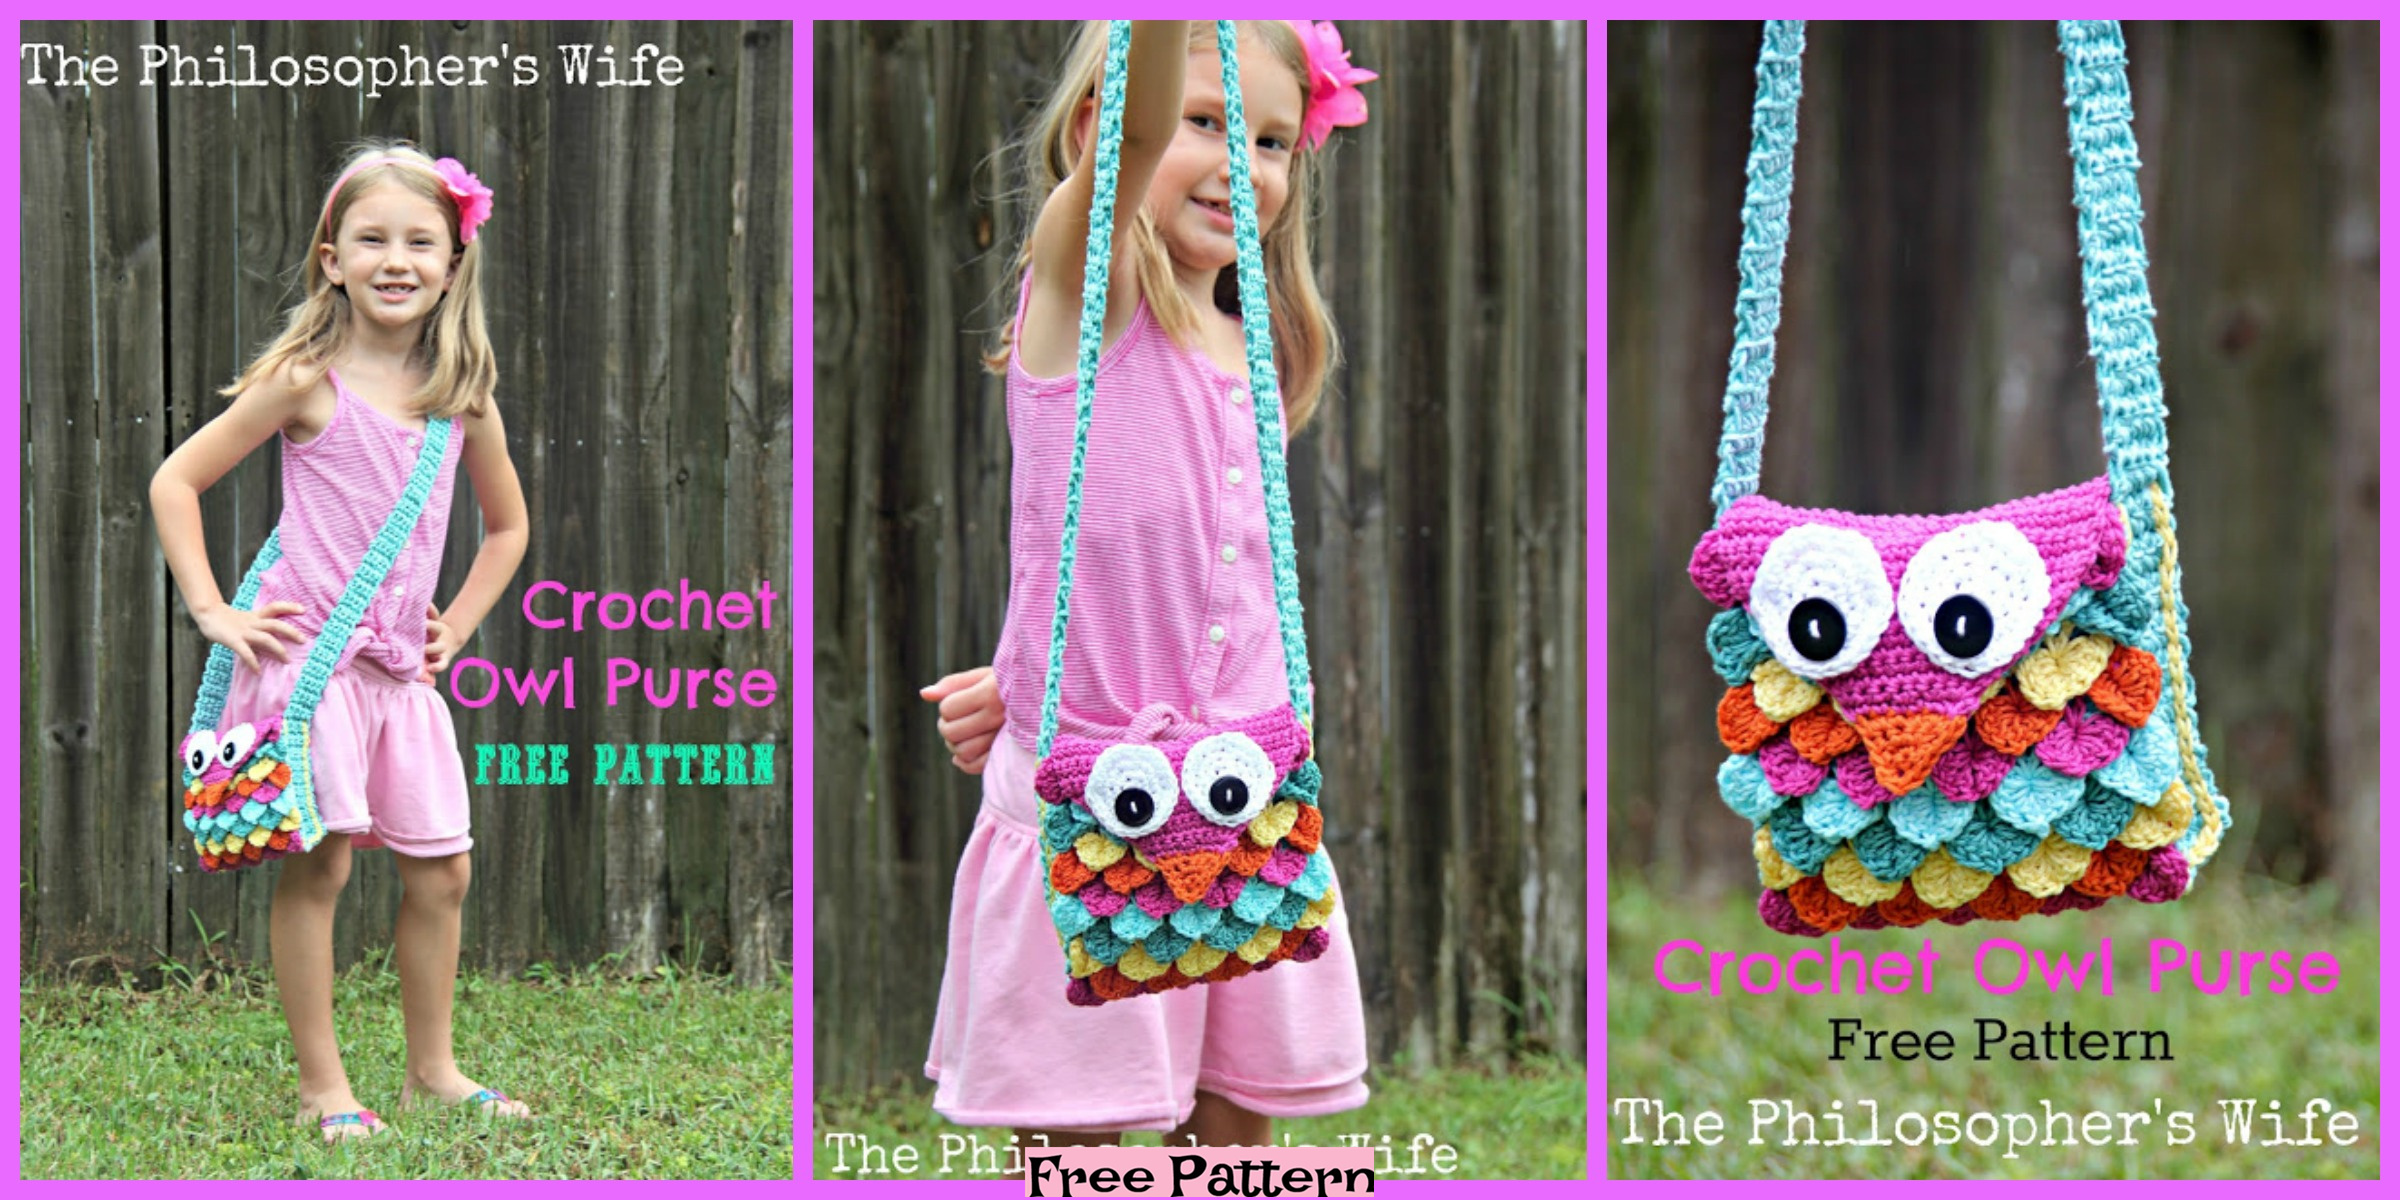 Crochet Owl Purse Free Pattern